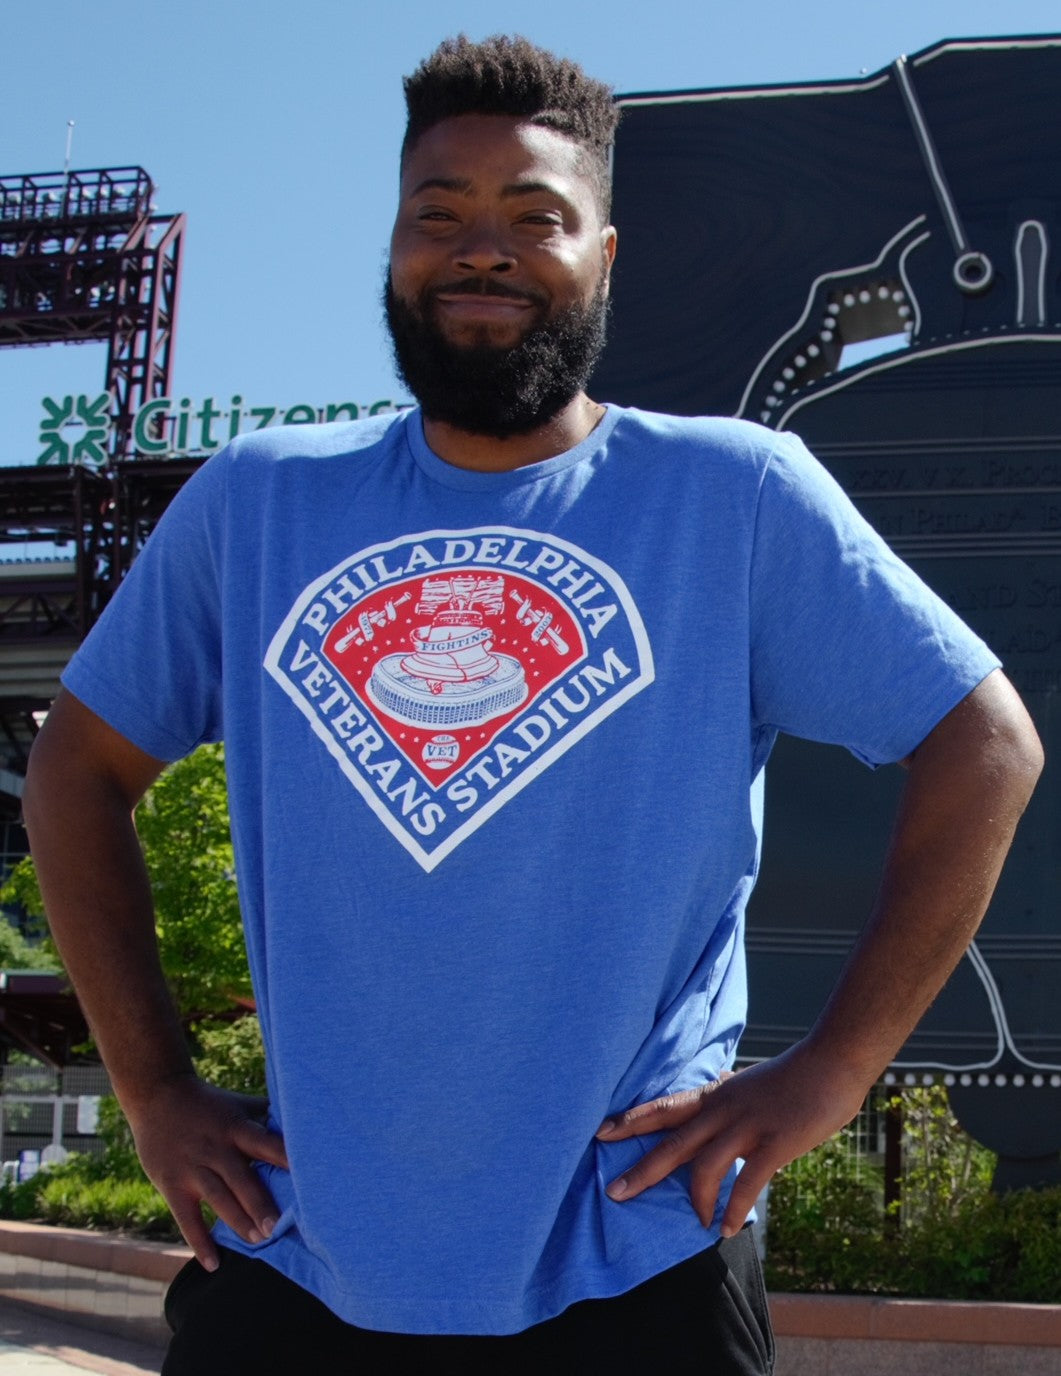 Veterans Stadium Philadelphia Baseball Royal Blue Shirt